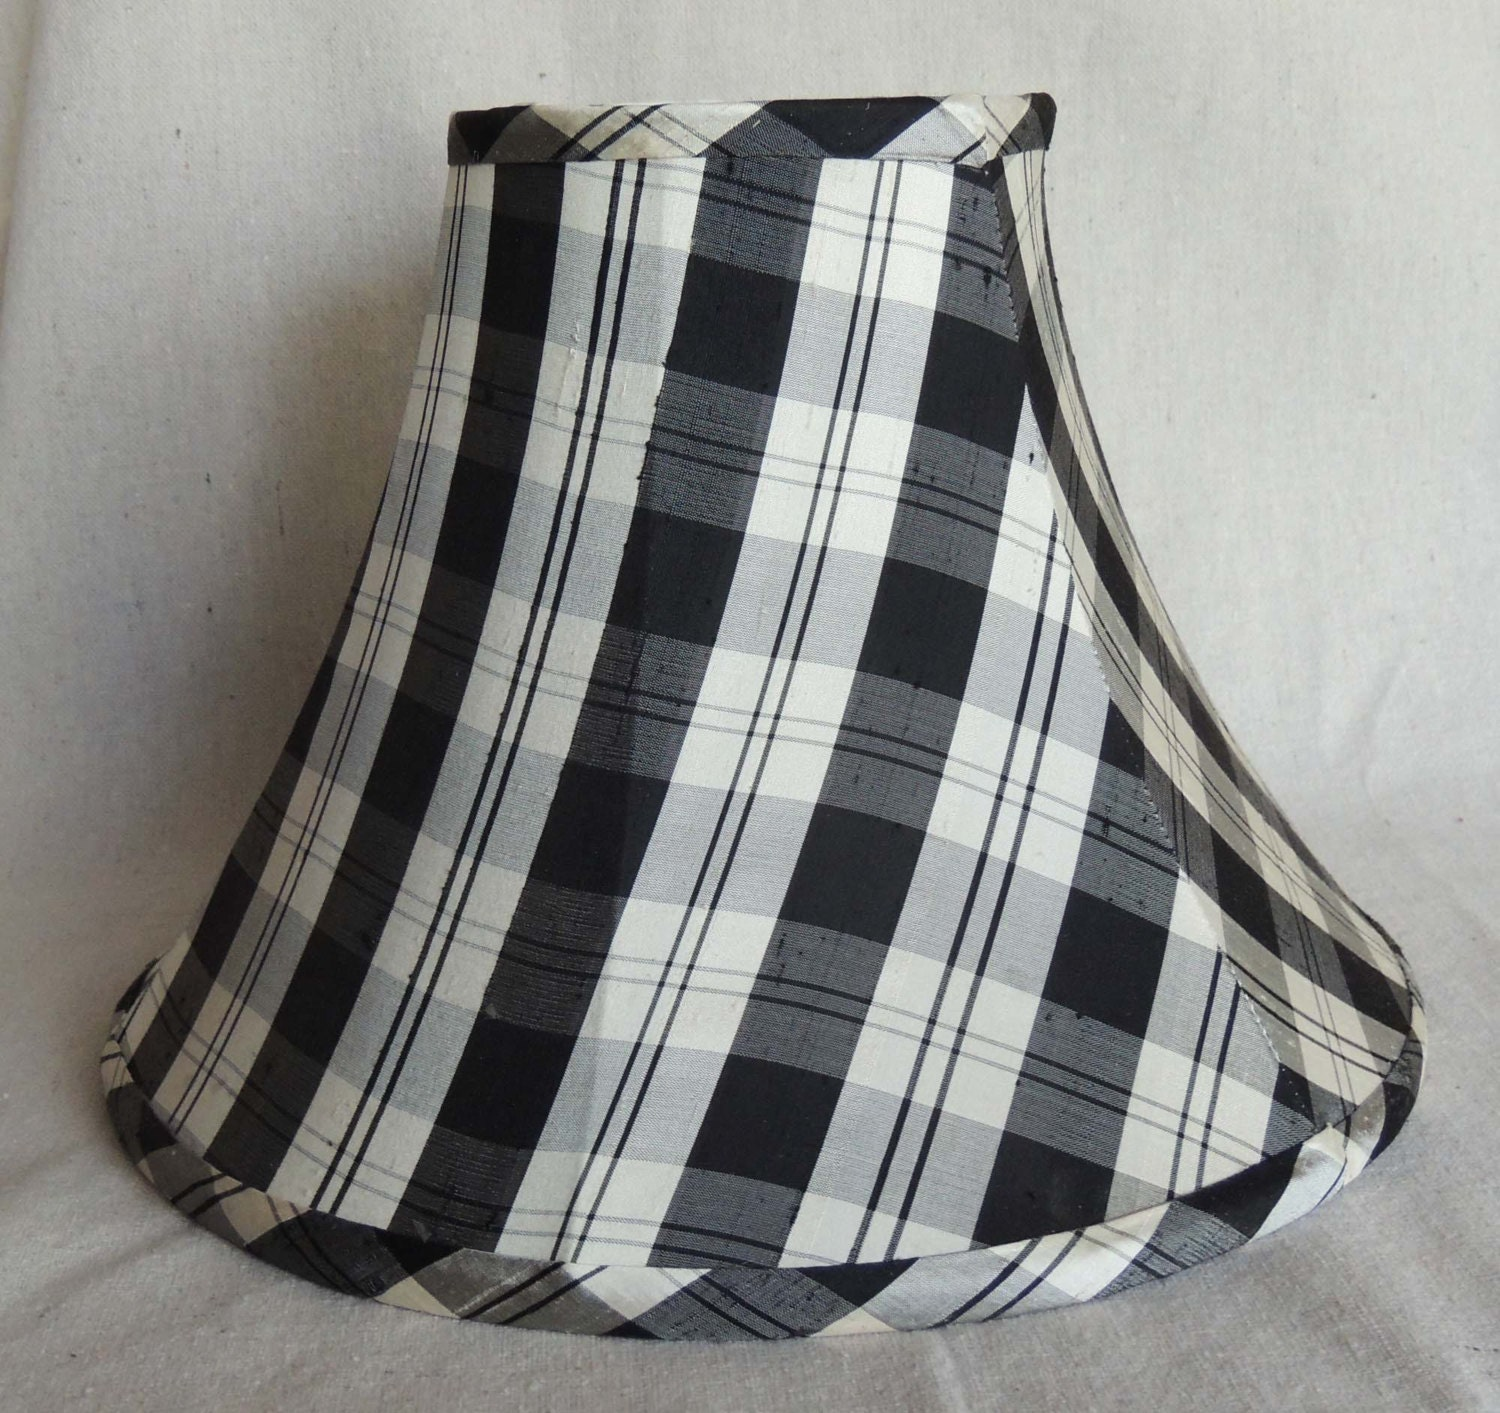 Small candle clip lamp shade made from black and white polka   Black And White Lamp Shades